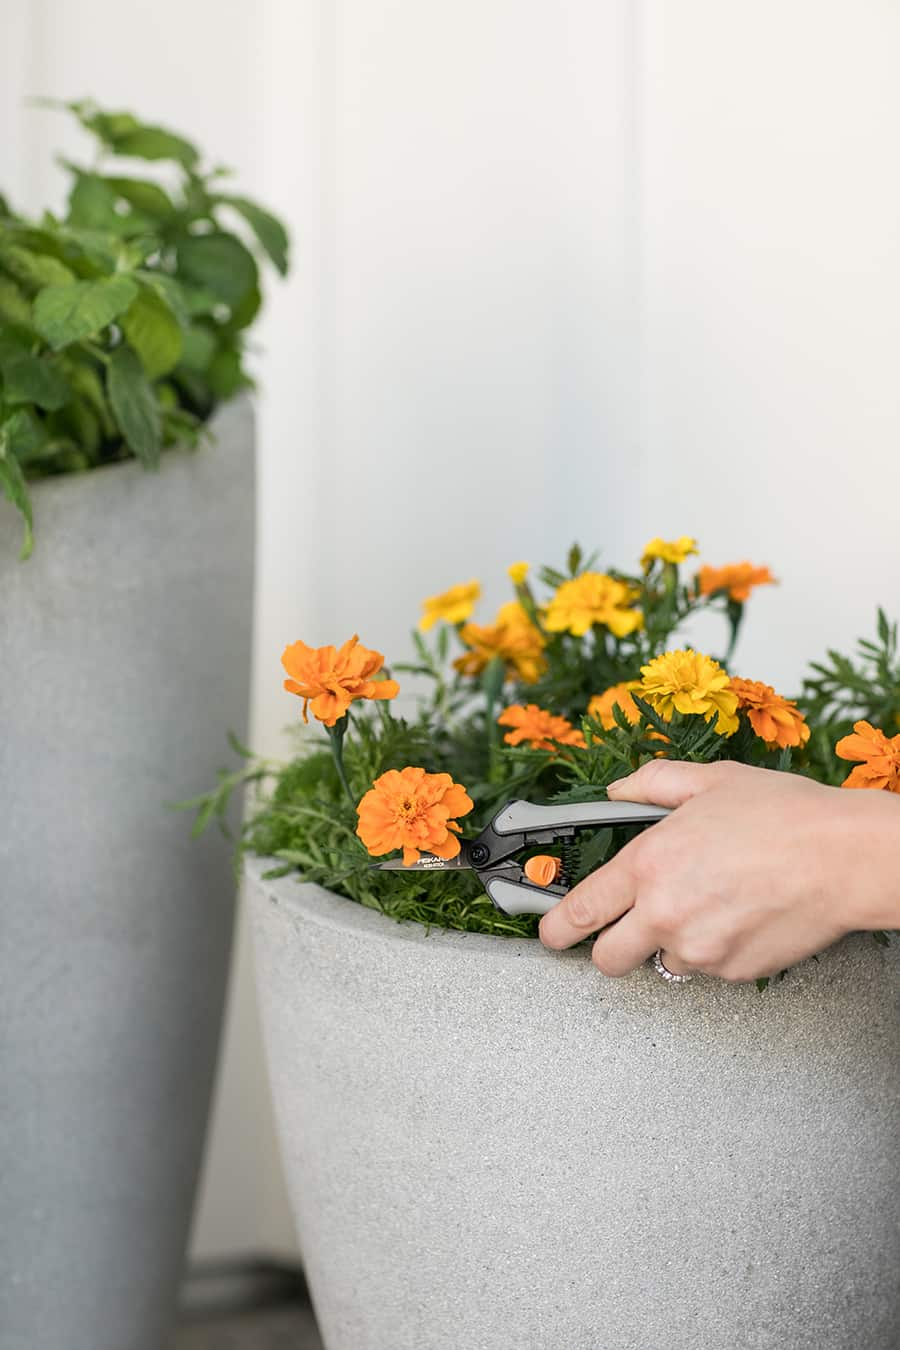 Clipping marigold flowers.